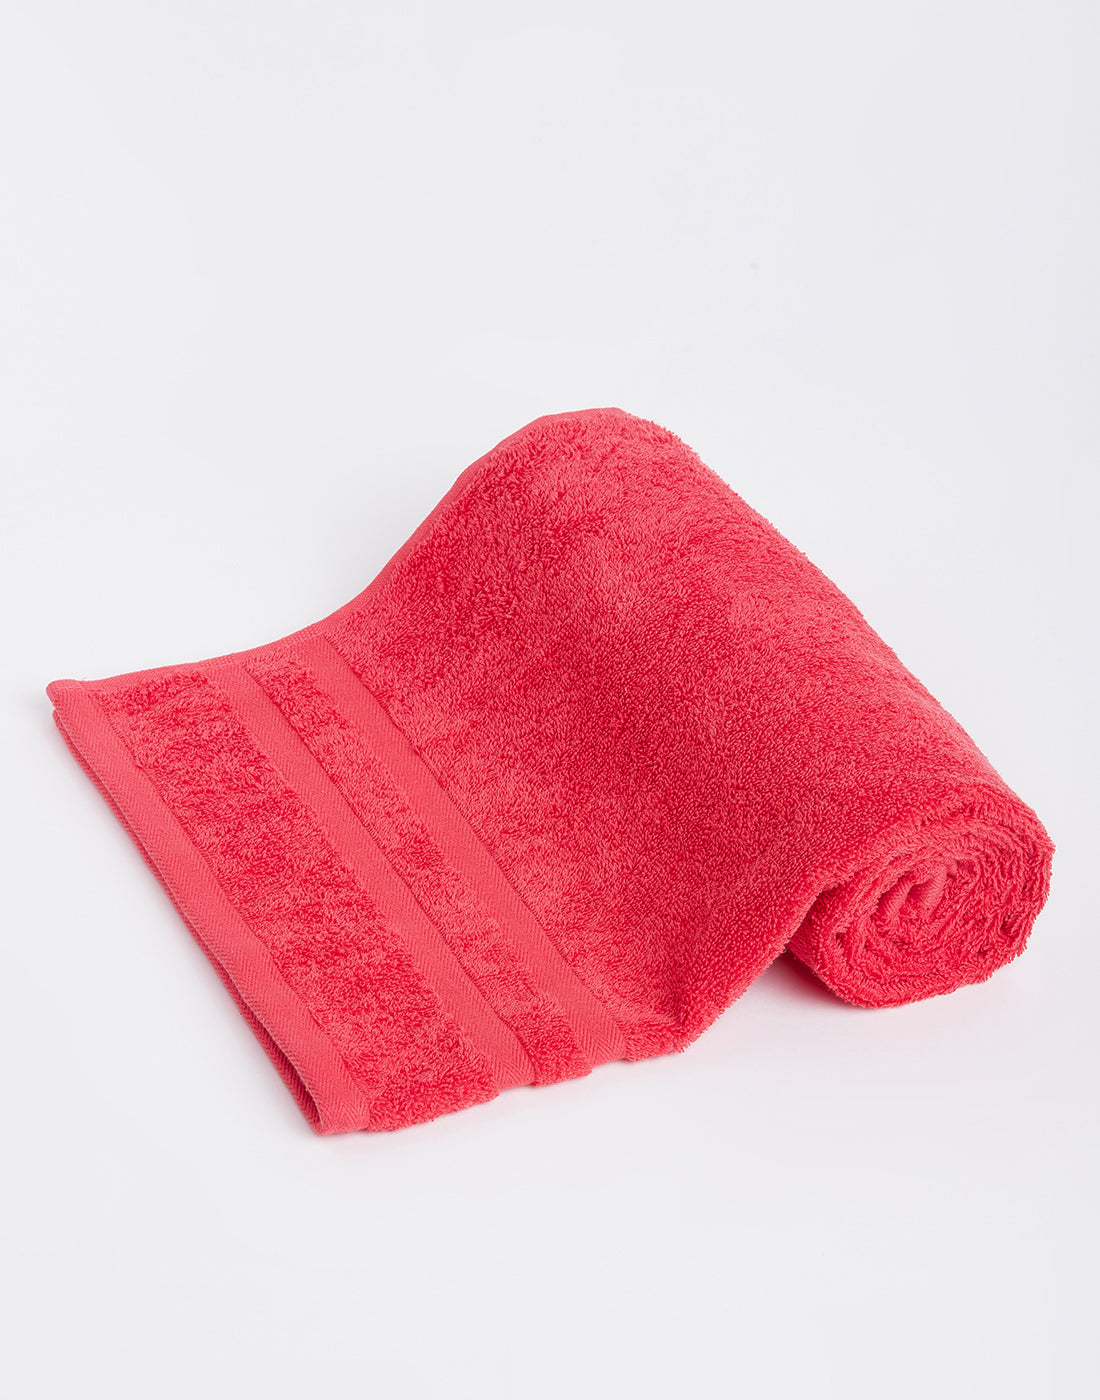 Octave Miami Red Cotton Bath Towels